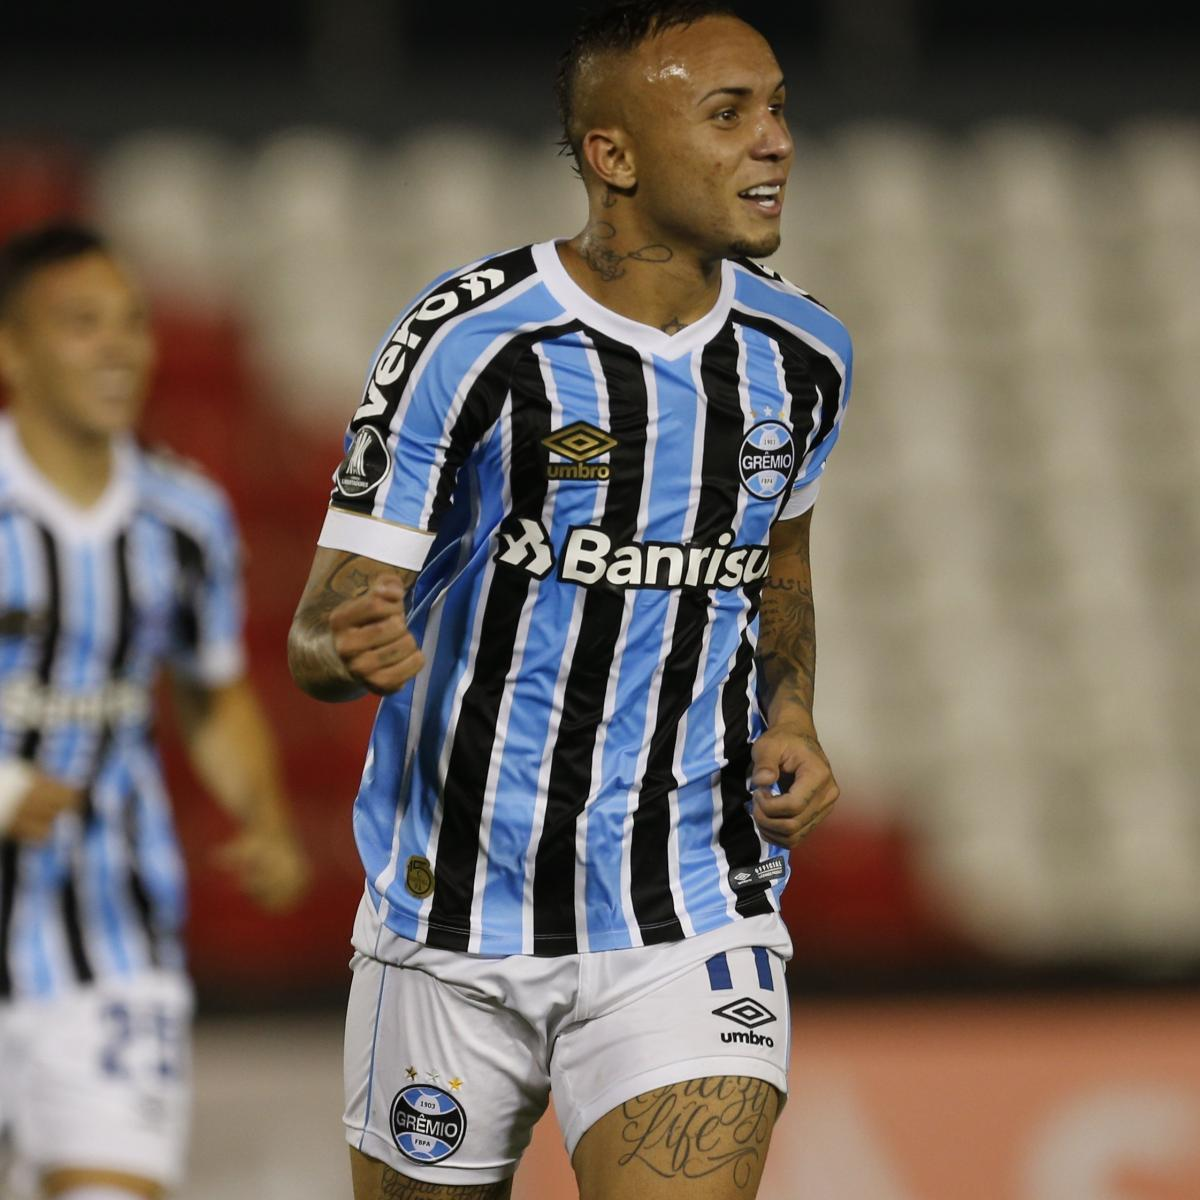 Everton Soares Says He Has A Proposal Amid Arsenal Transfer Rumours Bleacher Report Latest News Videos And Highlights